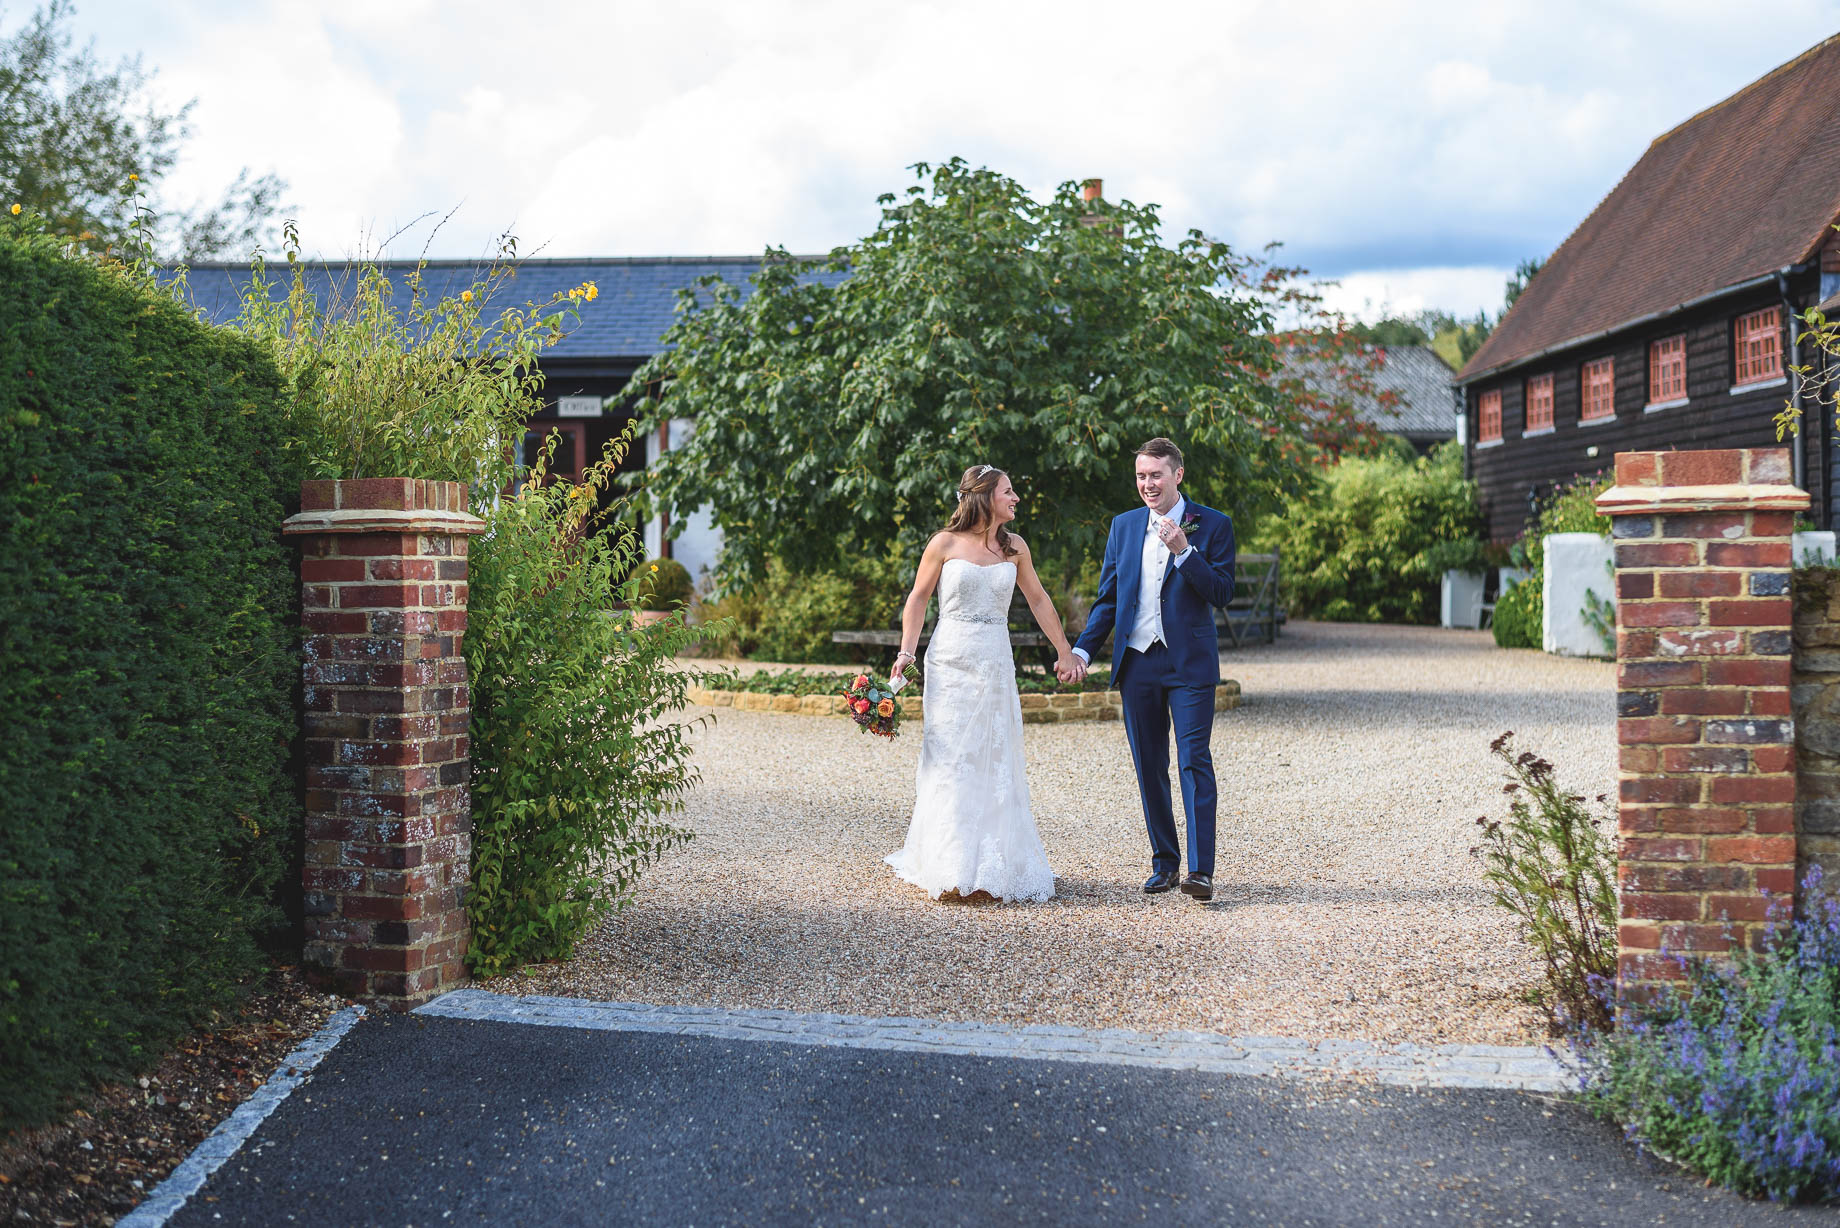 Gate Street Barn wedding photography - Guy Collier - Claire and Andy (74 of 192)